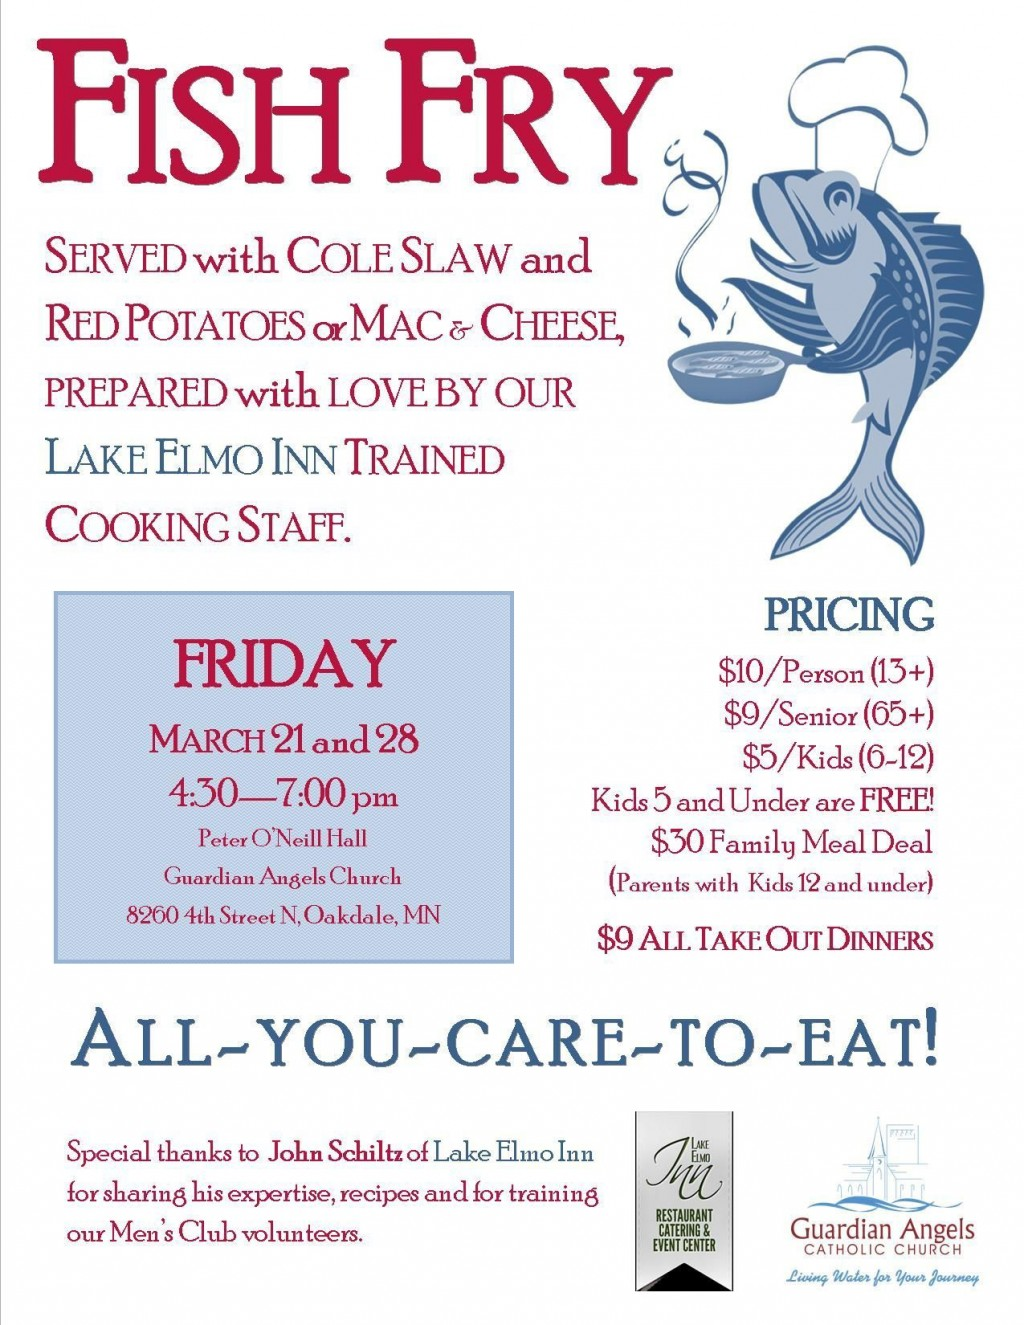 000 Simple Fish Fry Flyer Template High Def  Printable Free Powerpoint PsdLarge